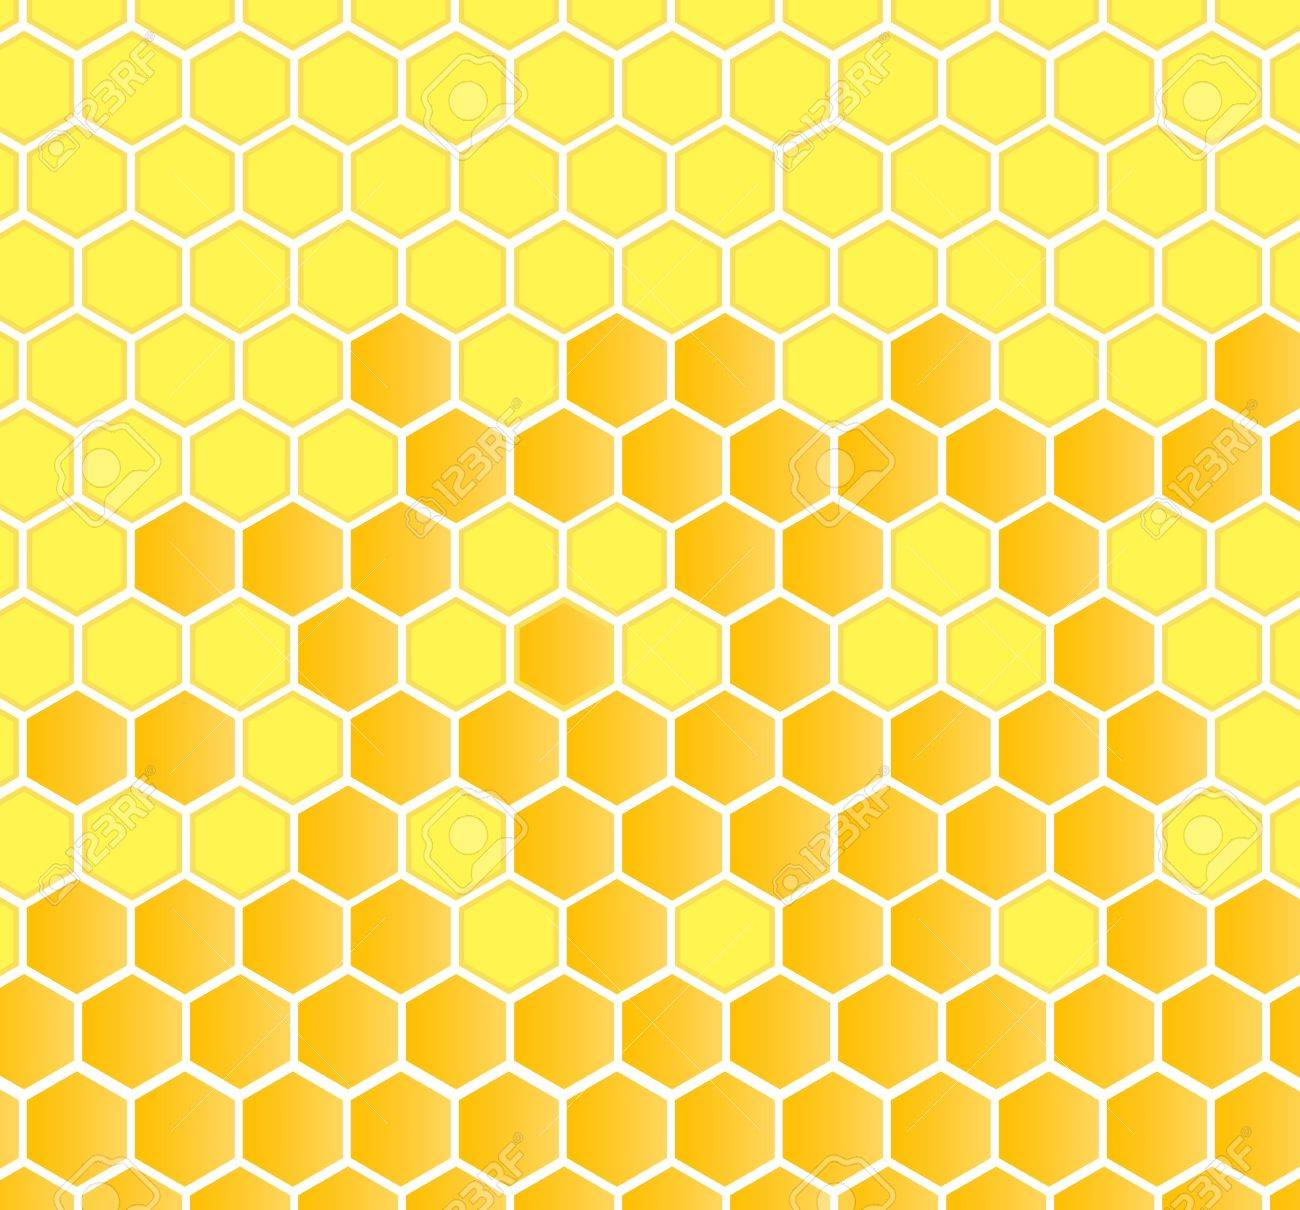 Honeycomb background for poster royalty free cliparts vectors honeycomb background for poster stock vector 13412218 voltagebd Image collections